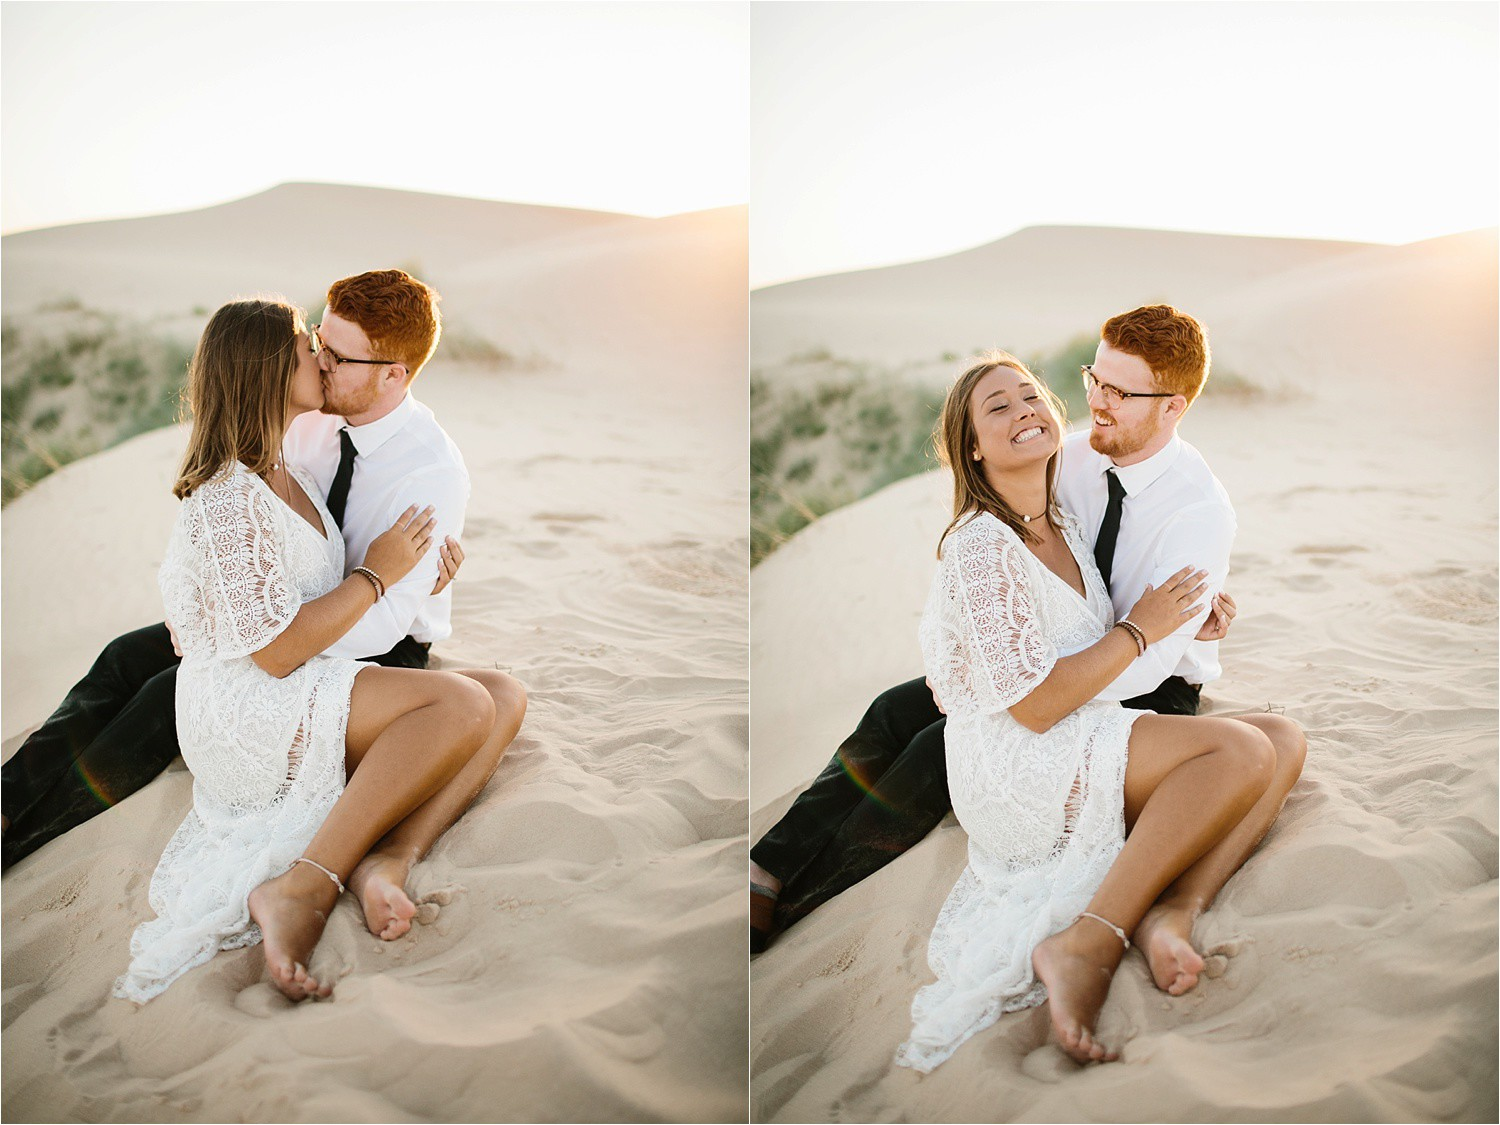 Lauren + Jacob __ a monahans sand dunes engagement session at sunrise by North Texas Wedding Photographer, Rachel Meagan Photography __ 16